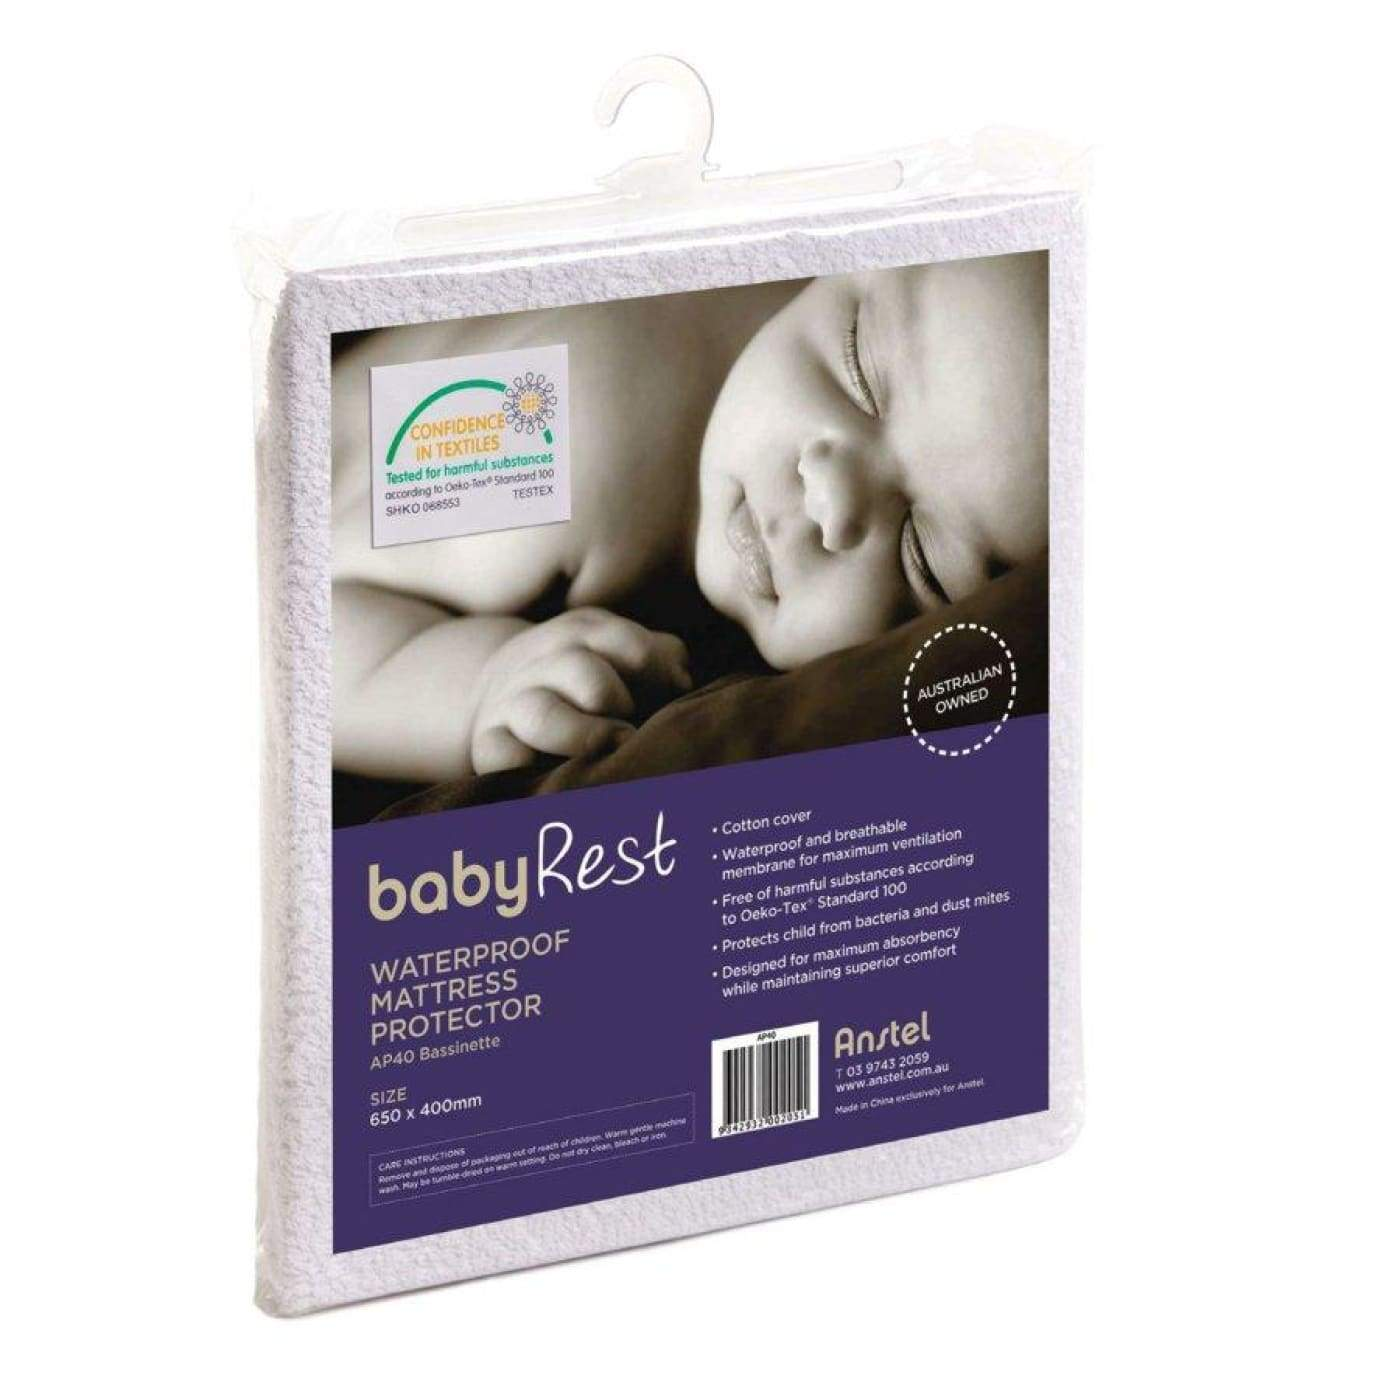 Babyrest Waterproof Mattress Protector - Bassinet 65X40CM - NURSERY & BEDTIME - BASS/CRADLE/COSLEEP MATT PROT